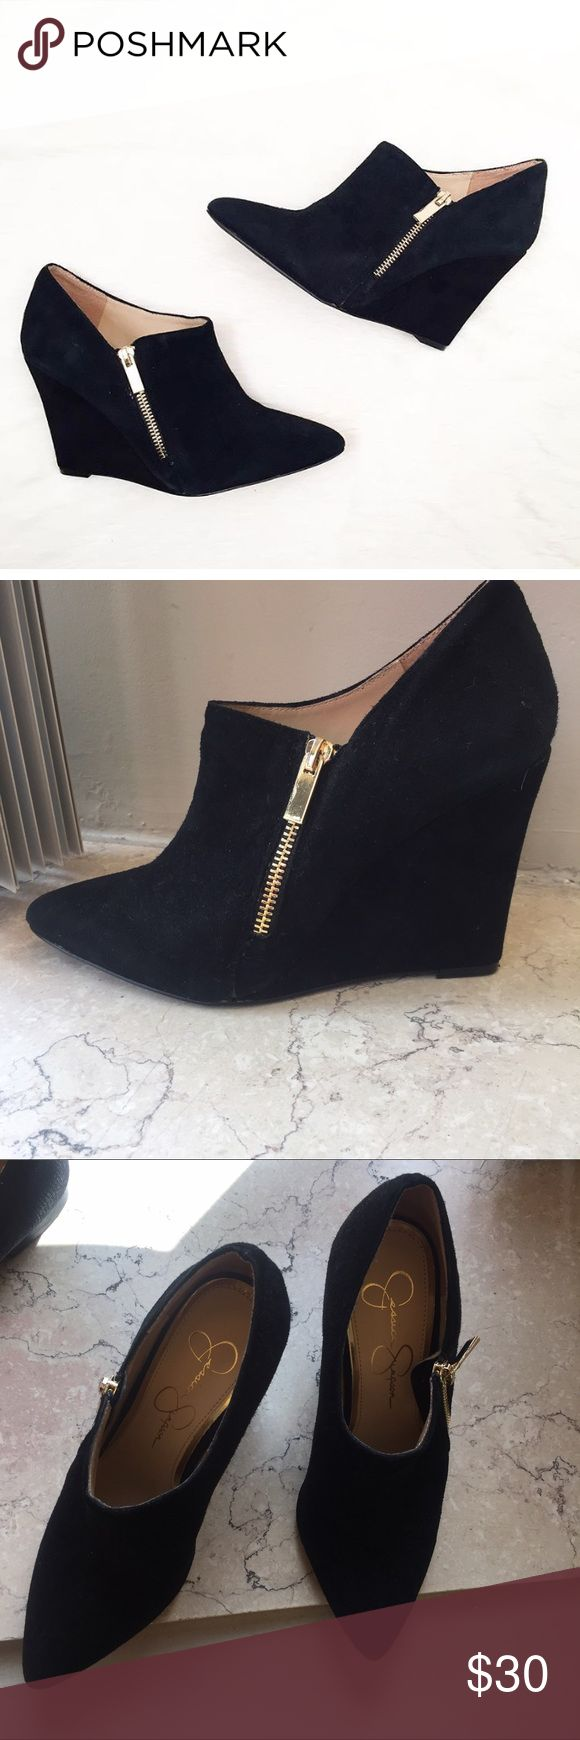 Jessica Simpson Wedges Shoes 8 Bootie black Brand new never worn Jessica Simpson wedge bootie. These are a little narrow. Side gold zipper. Very elegant shoes! Jessica Simpson Shoes Ankle Boots & Booties